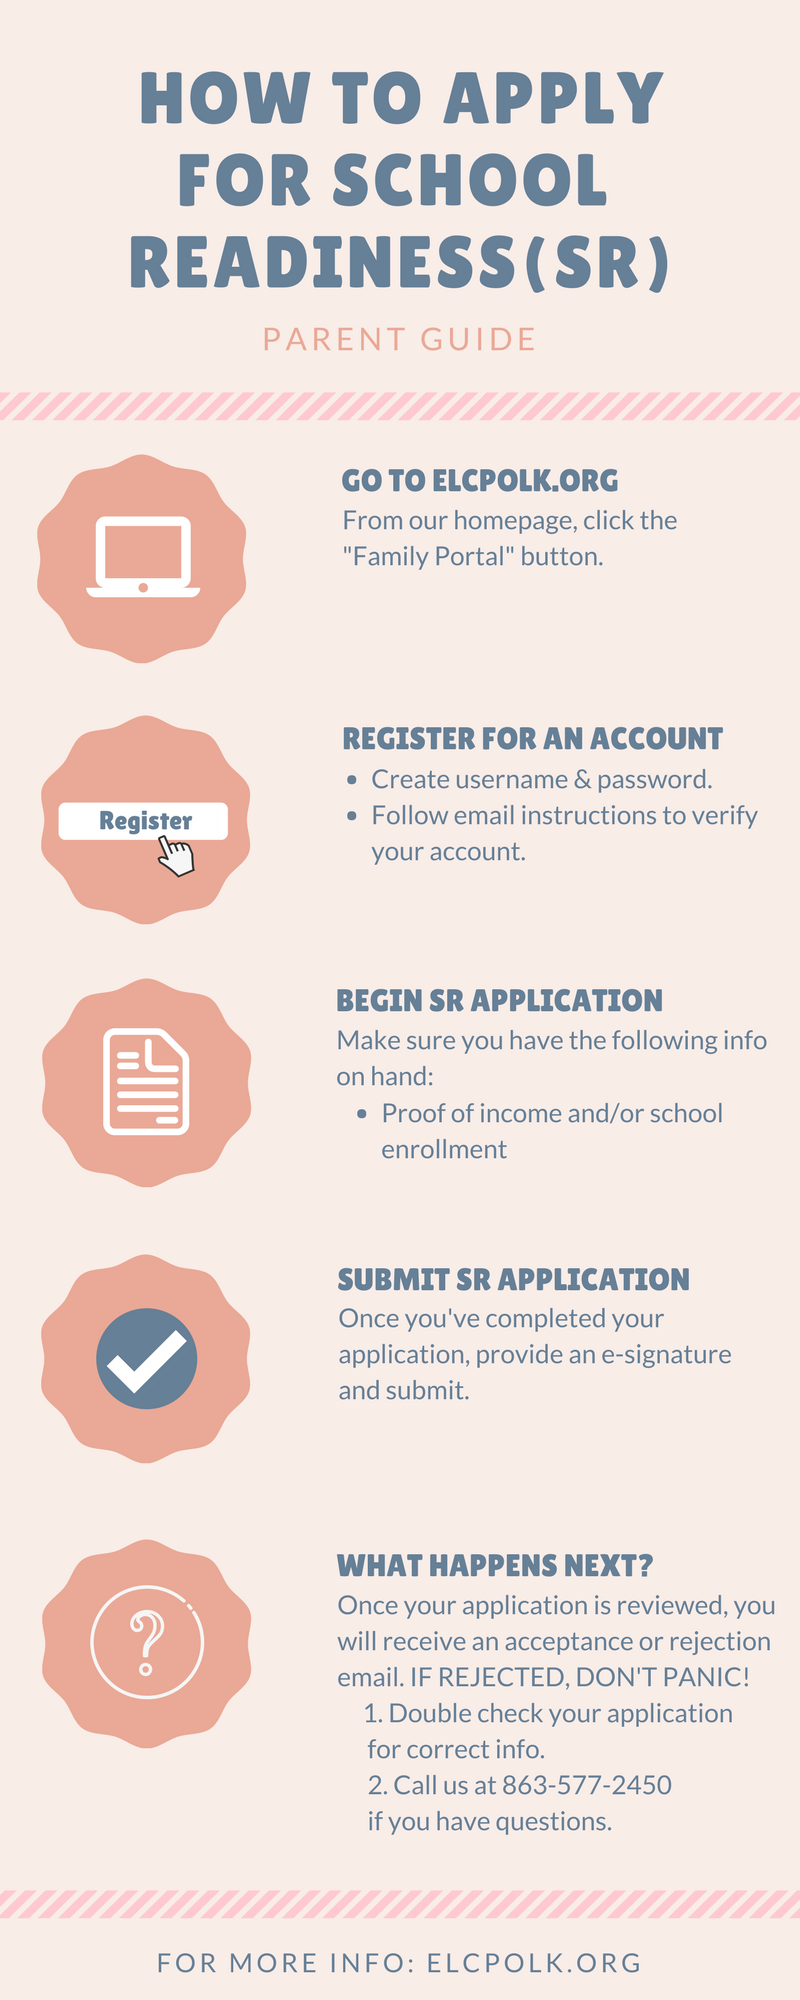 How To Apply For School Readiness